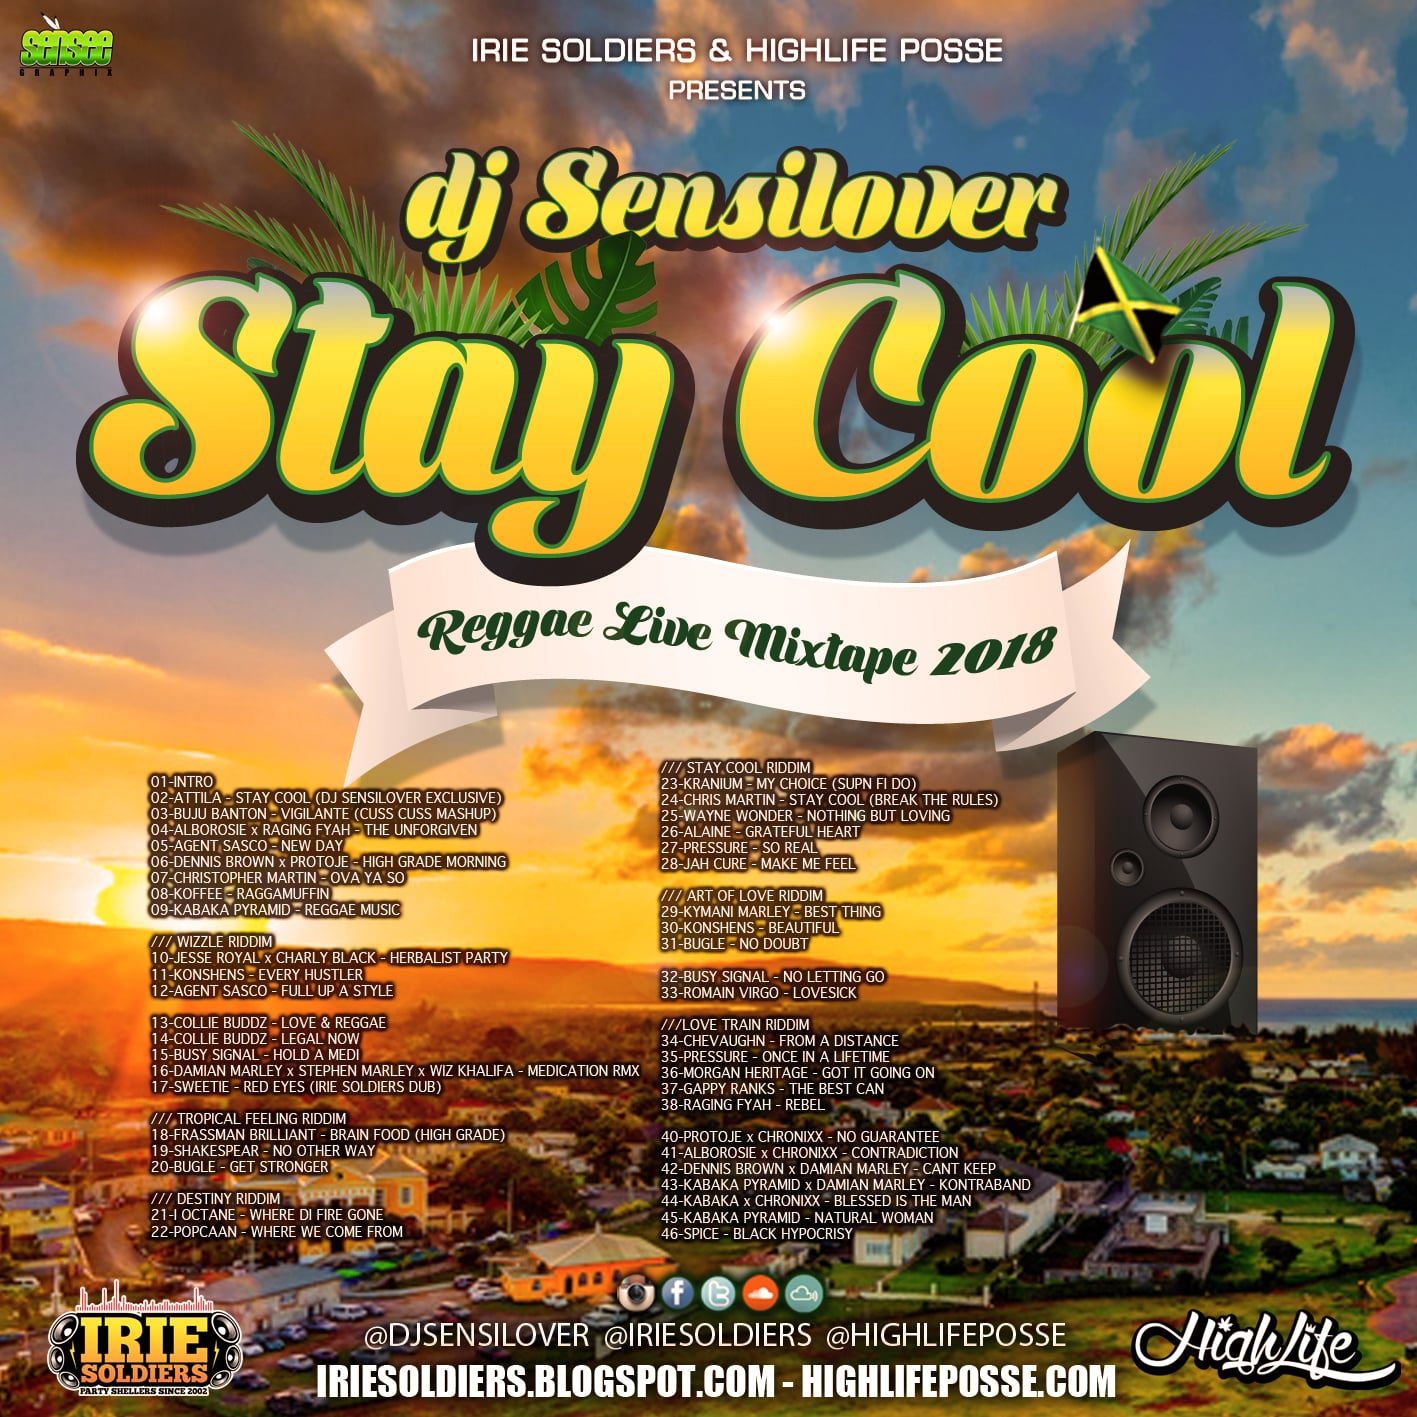 IRIE SOLDIERS DANCEHALL REGGAE MIXTAPES: December 2018